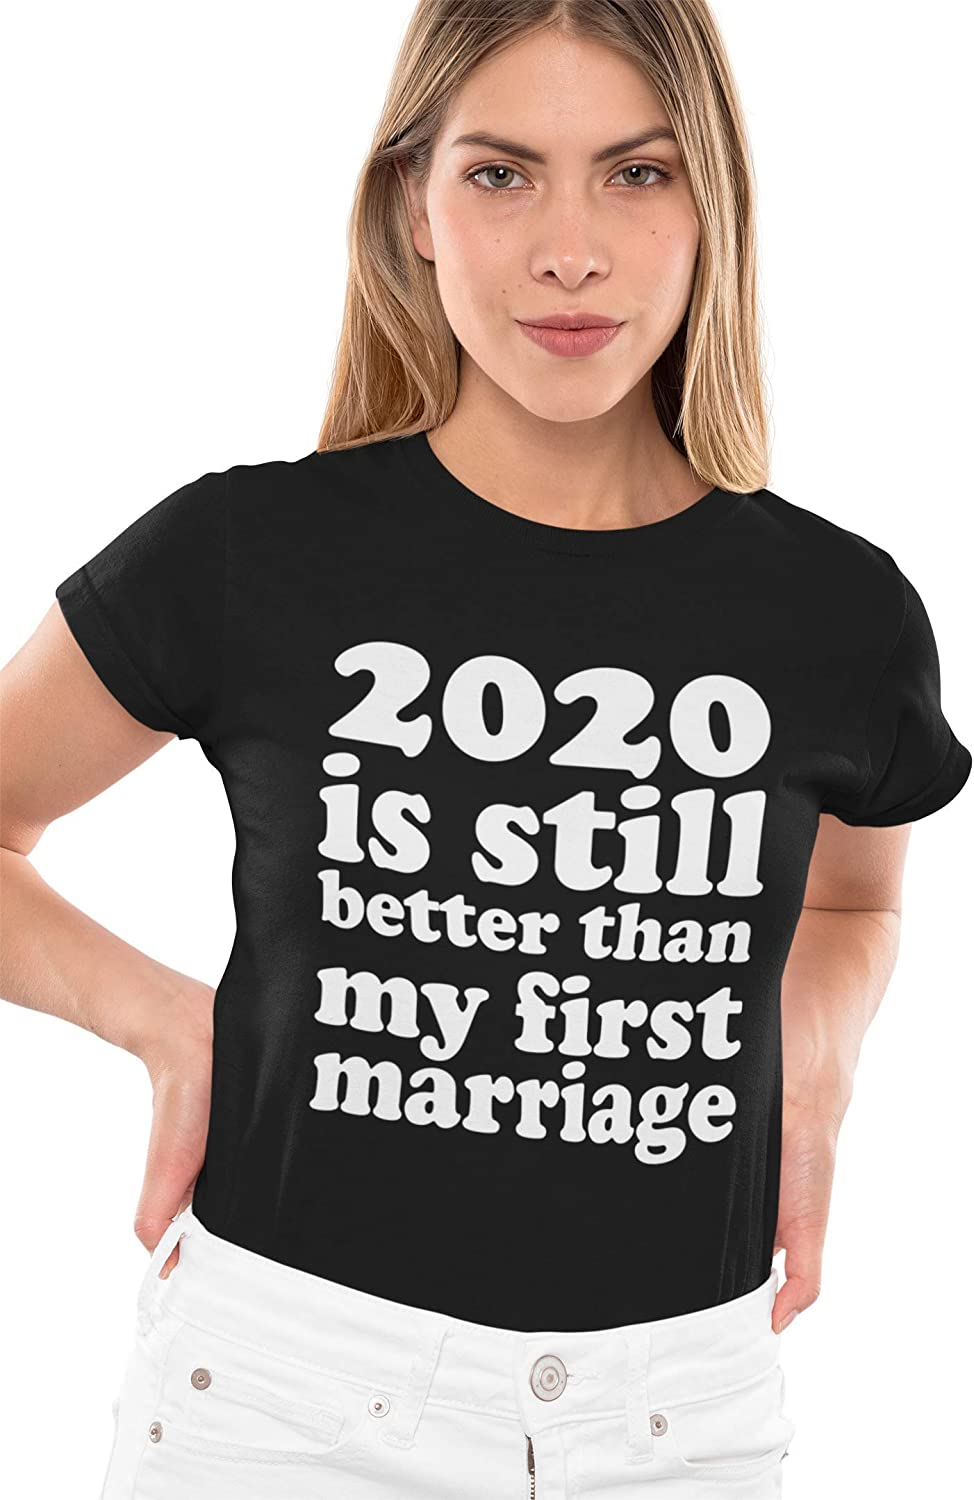 ALLNTRENDS Womens T Shirt 2020 is Still Better Than My First Marriage Humor Tshirt